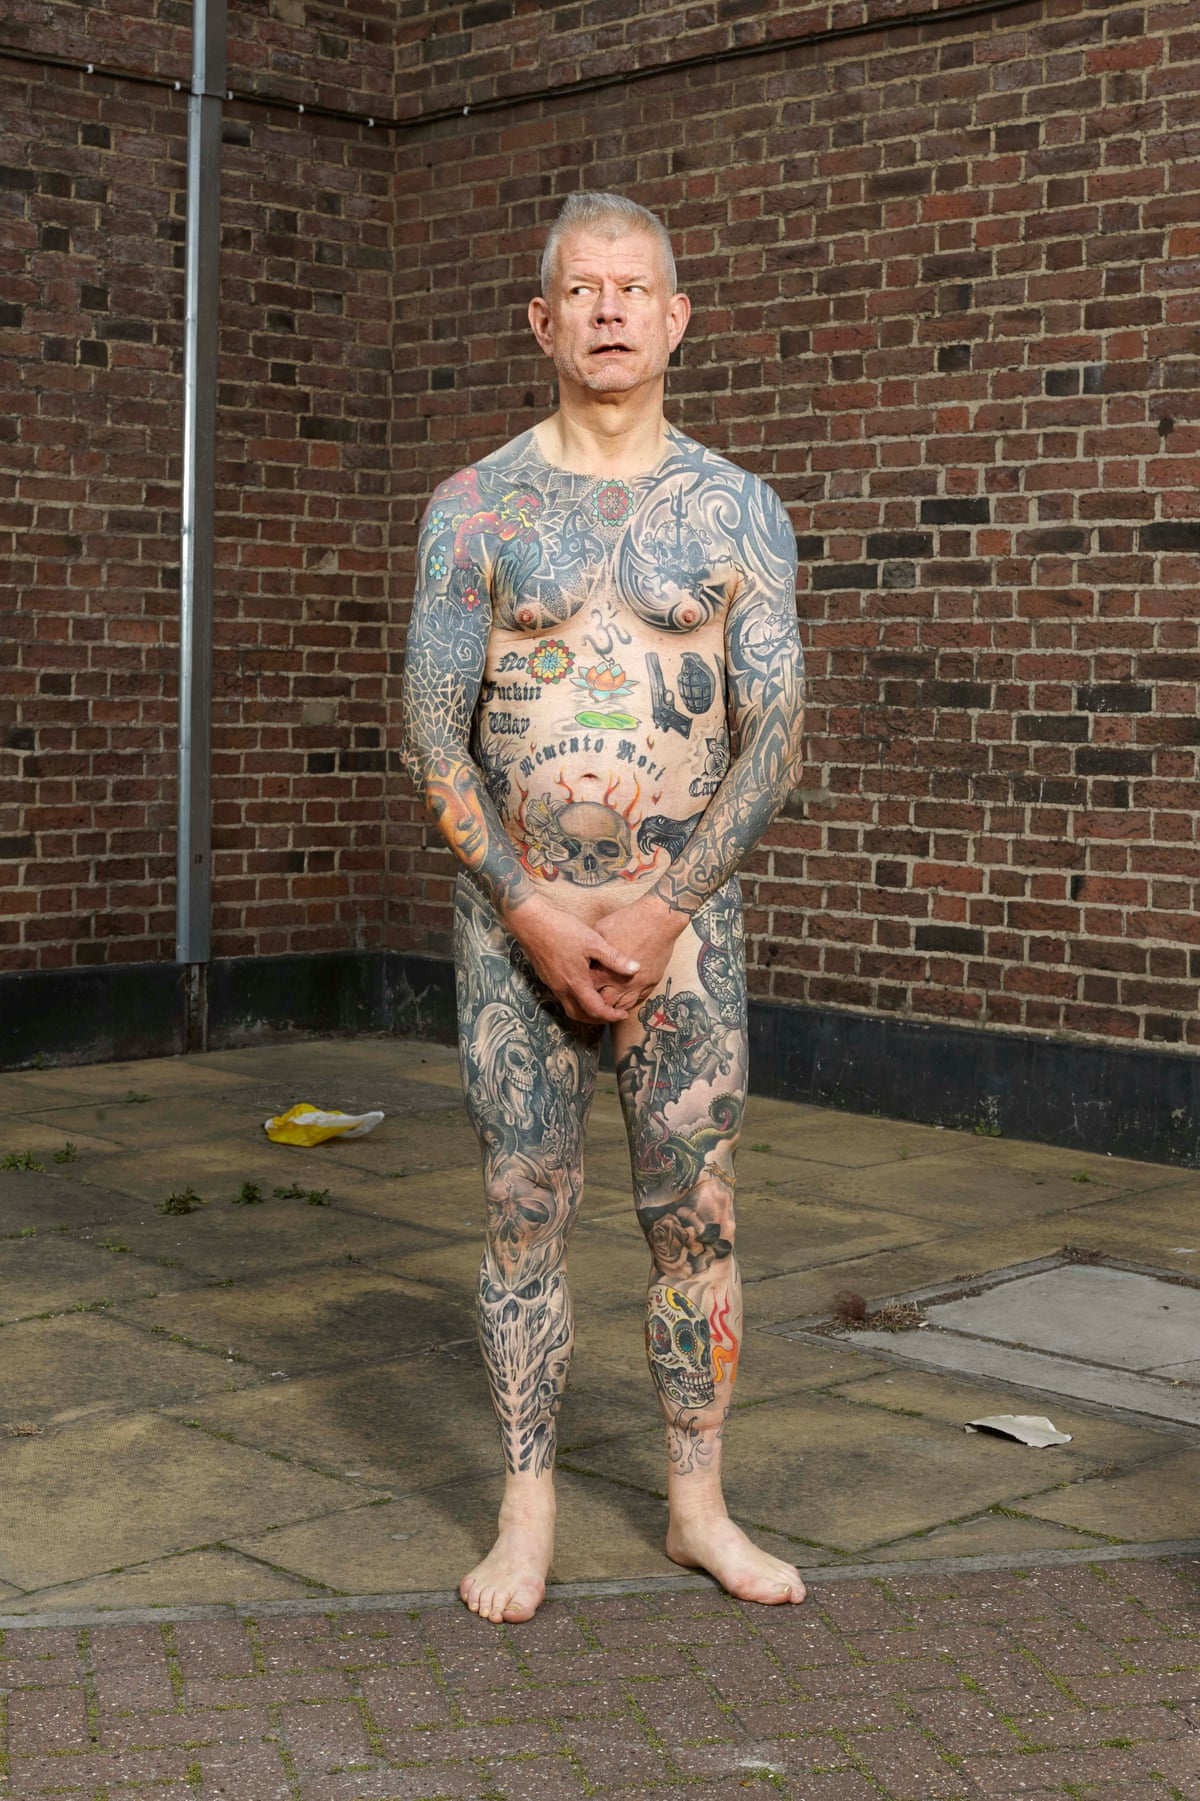 Naked People With Tattoos 85